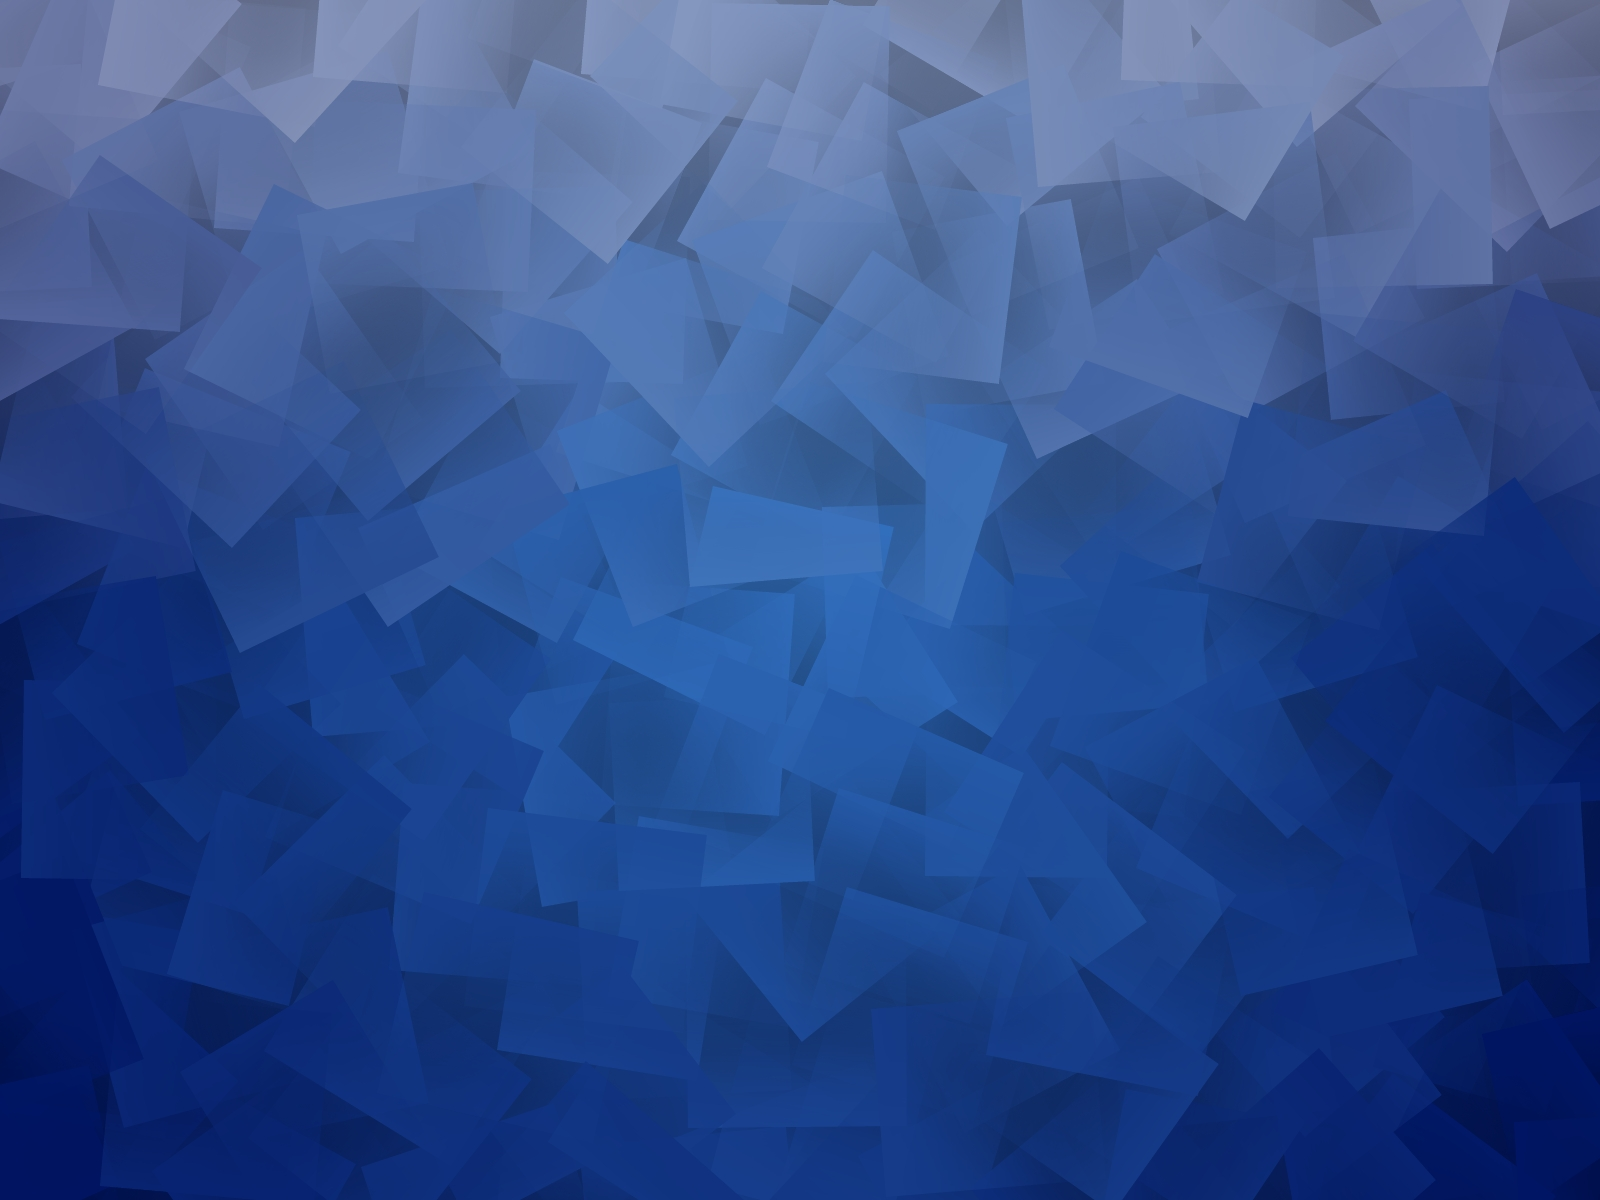 Blue Modern Wallpaper Texture Blue Cubism Wallpapers Blue Cubism Stock Photos